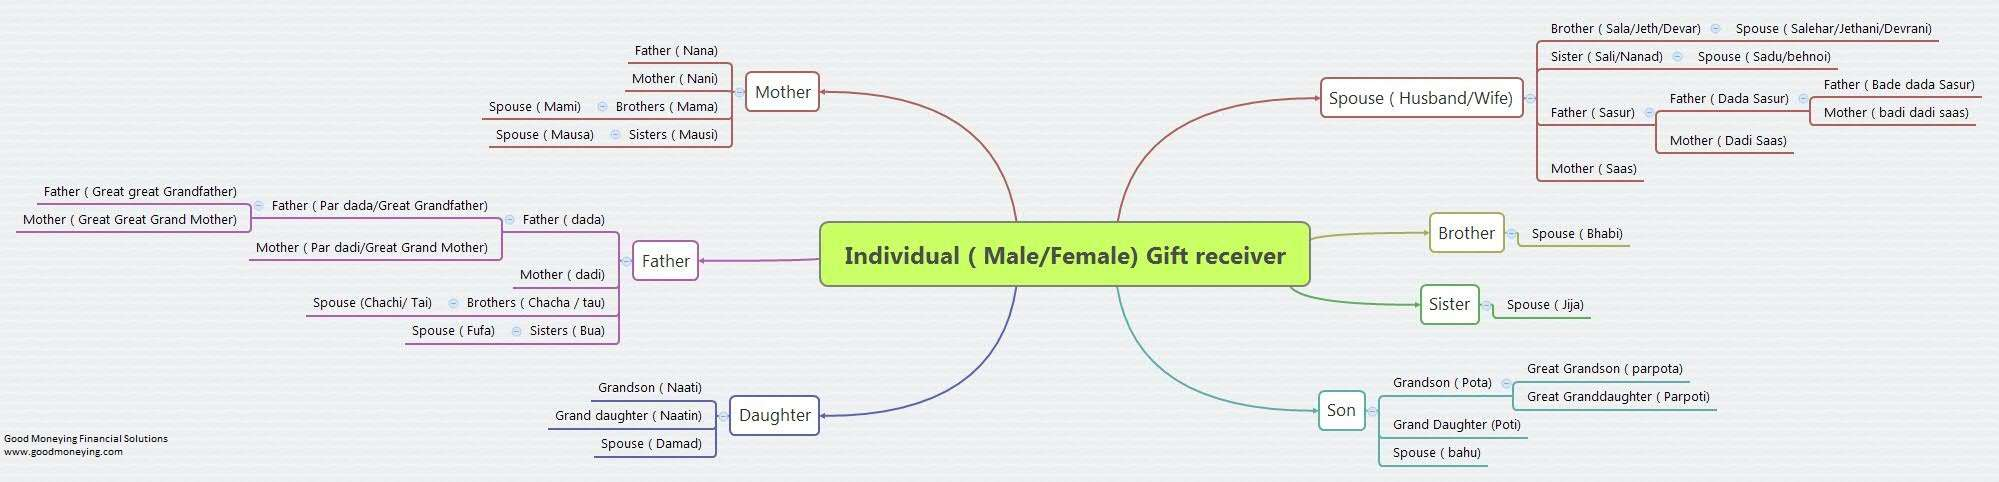 Gift tax in India - Income tax rules on gifts and exemption